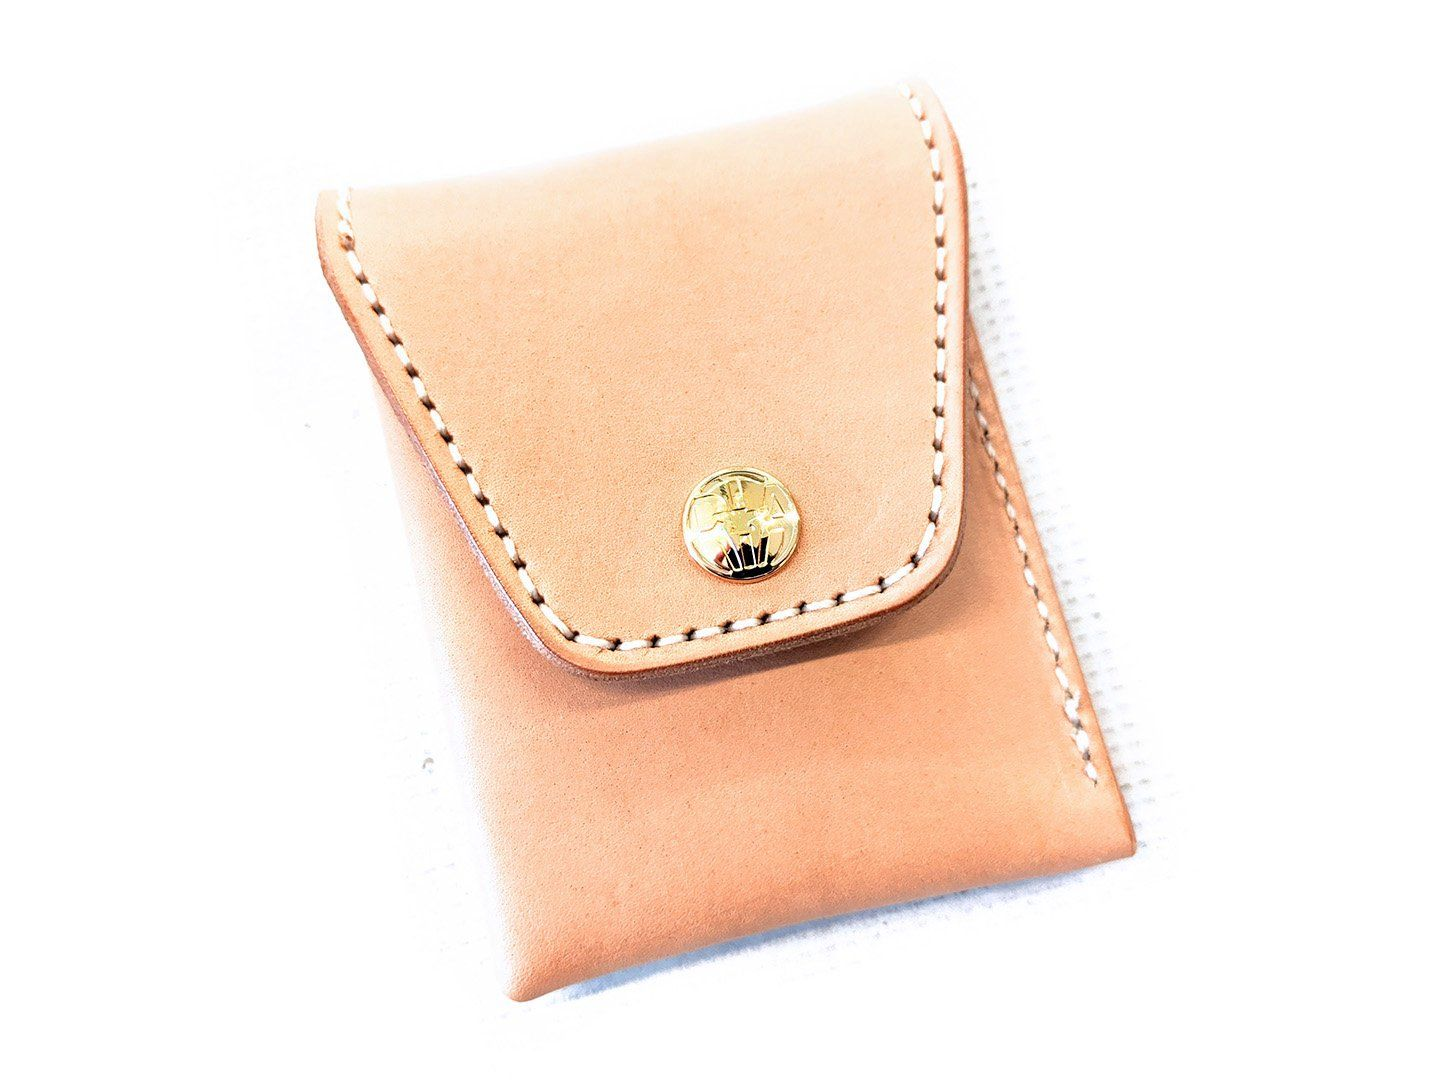 Sarasota Pocket Wallet - Natural Cowhide